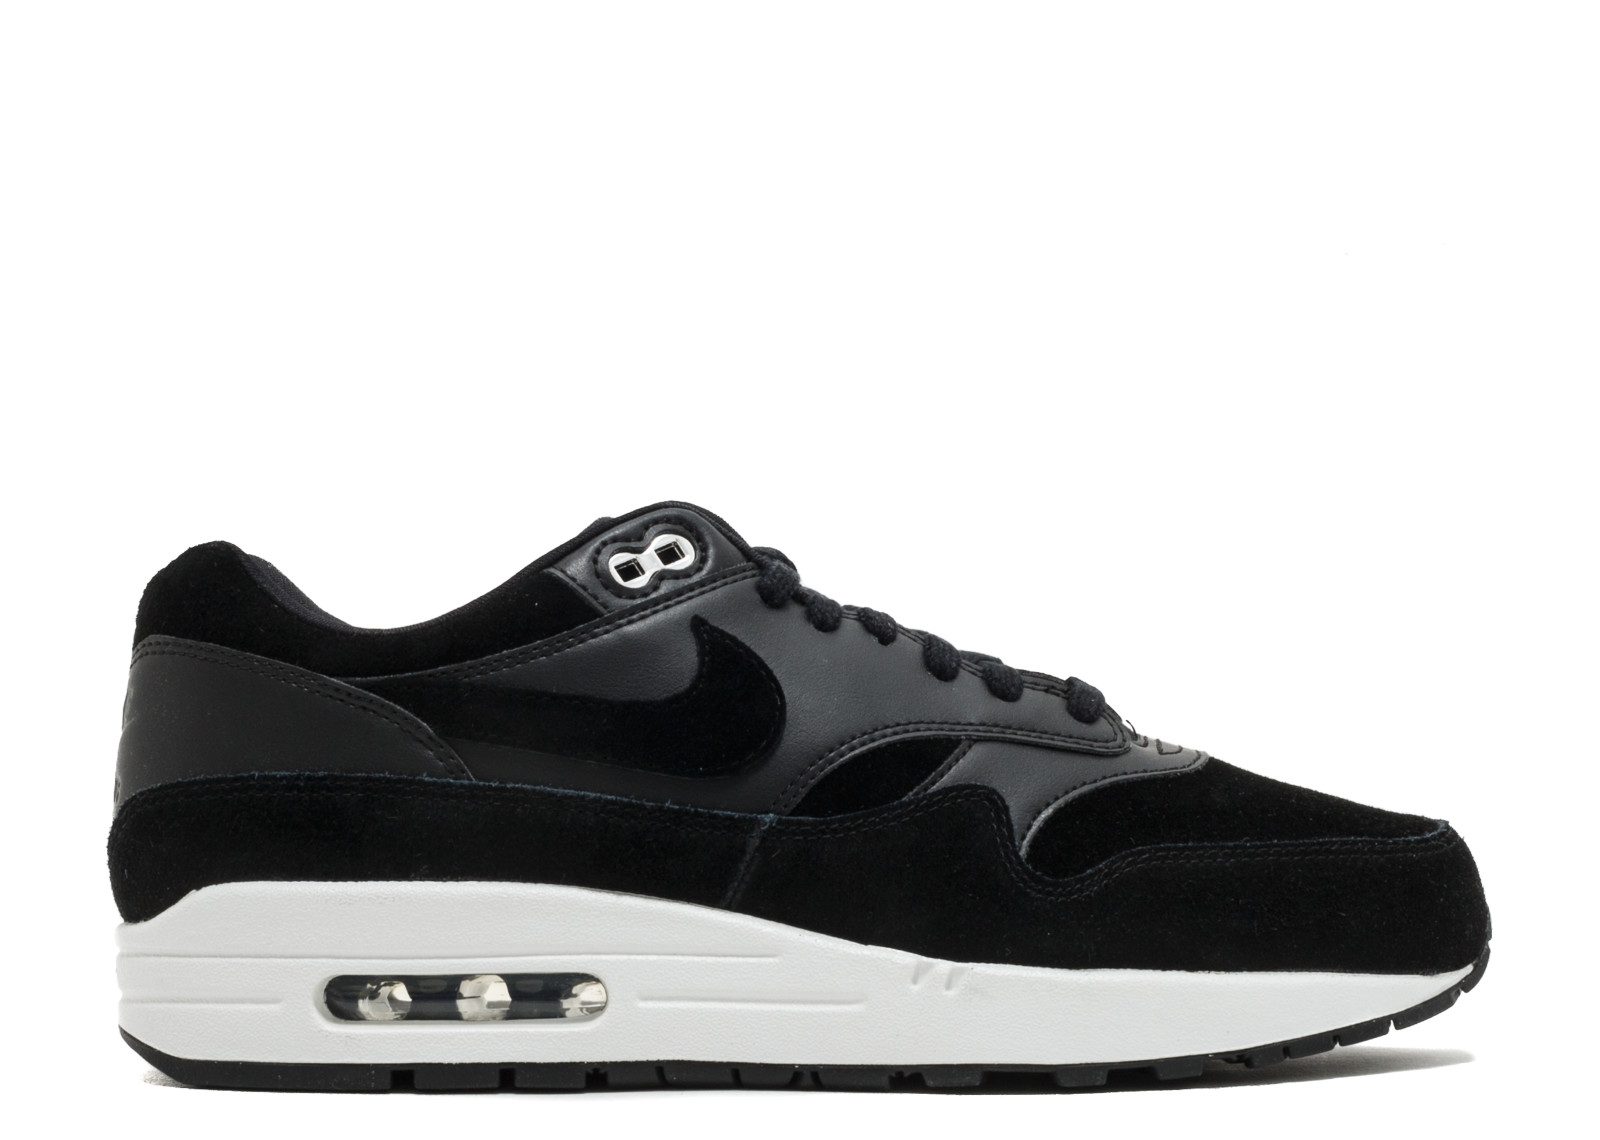 685c115c58 Air Max 1 Premium Skulls Chrome Off White Black 875844-001